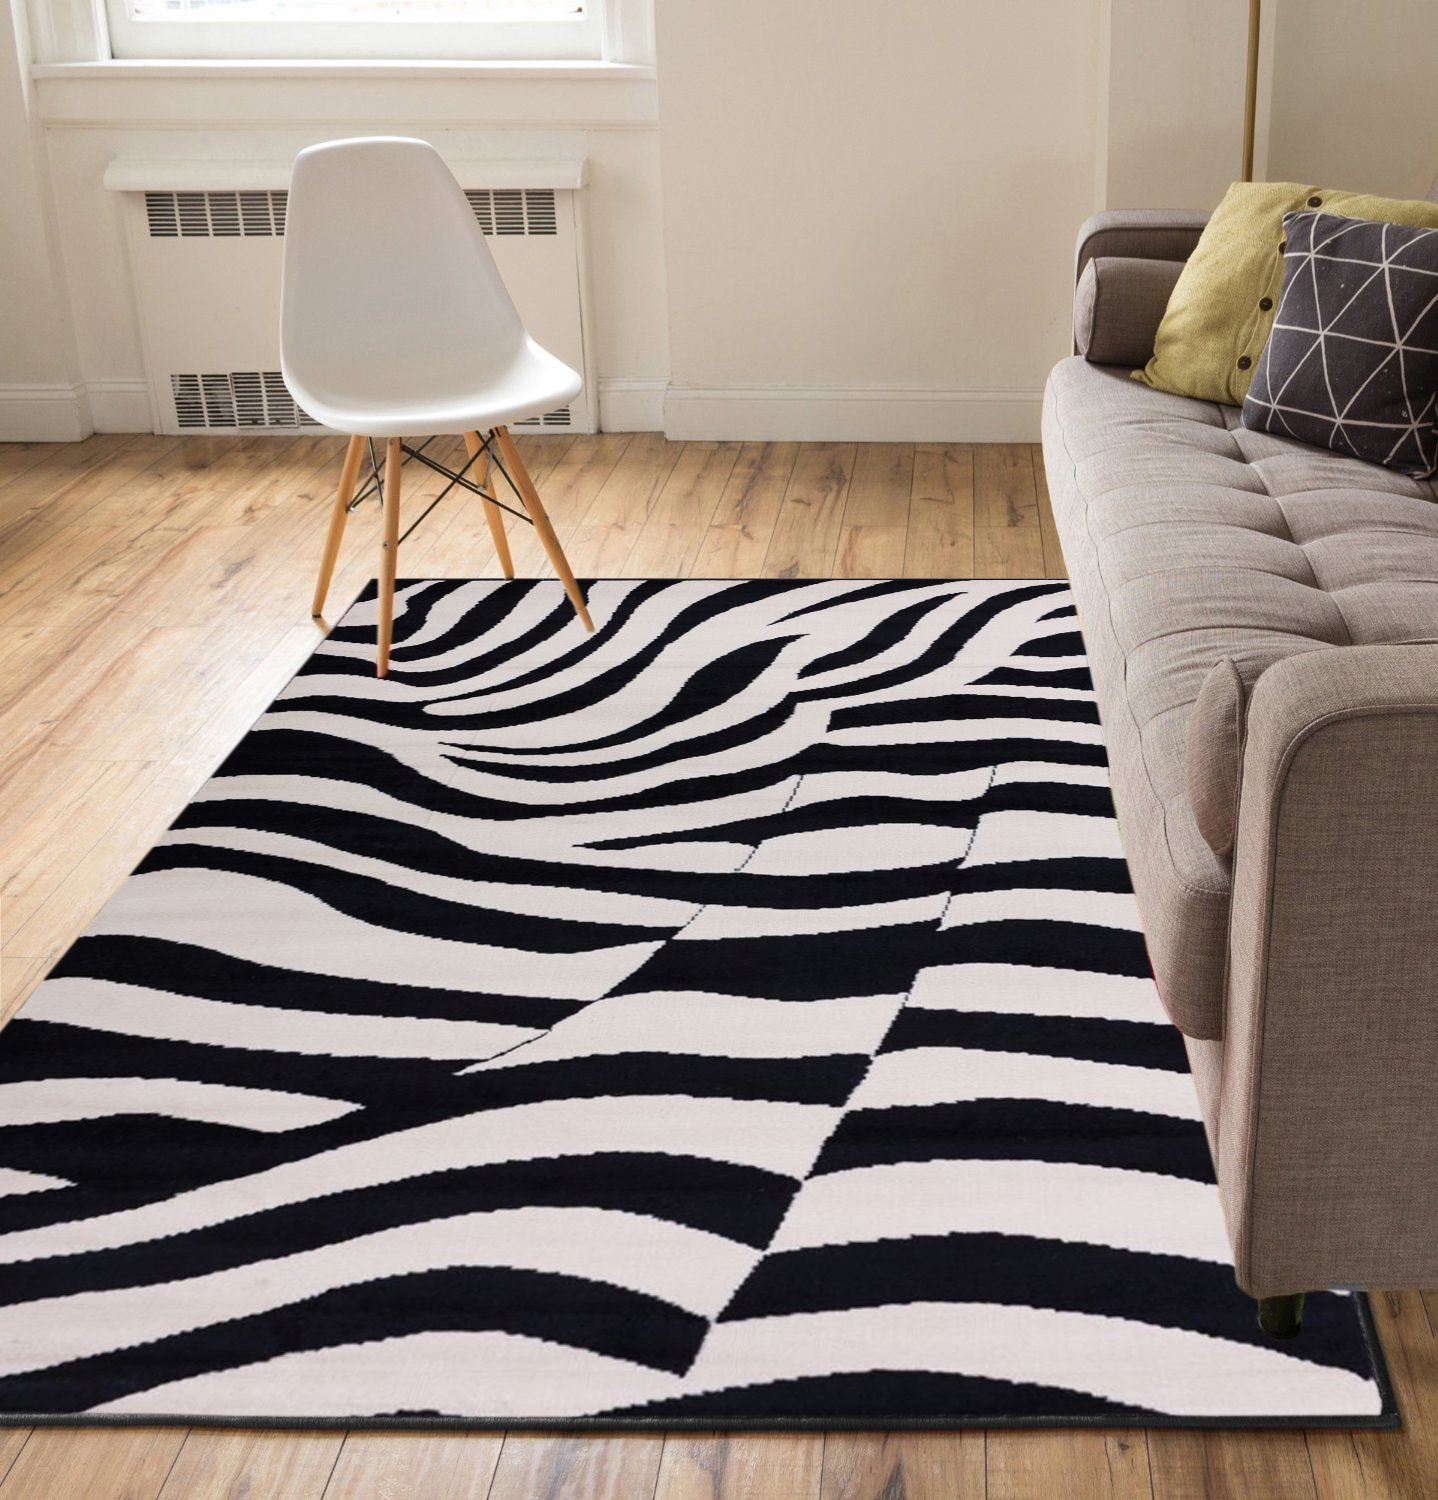 Well Woven Zebra Black 5' x 7' Area Rug Carpet by Well Woven